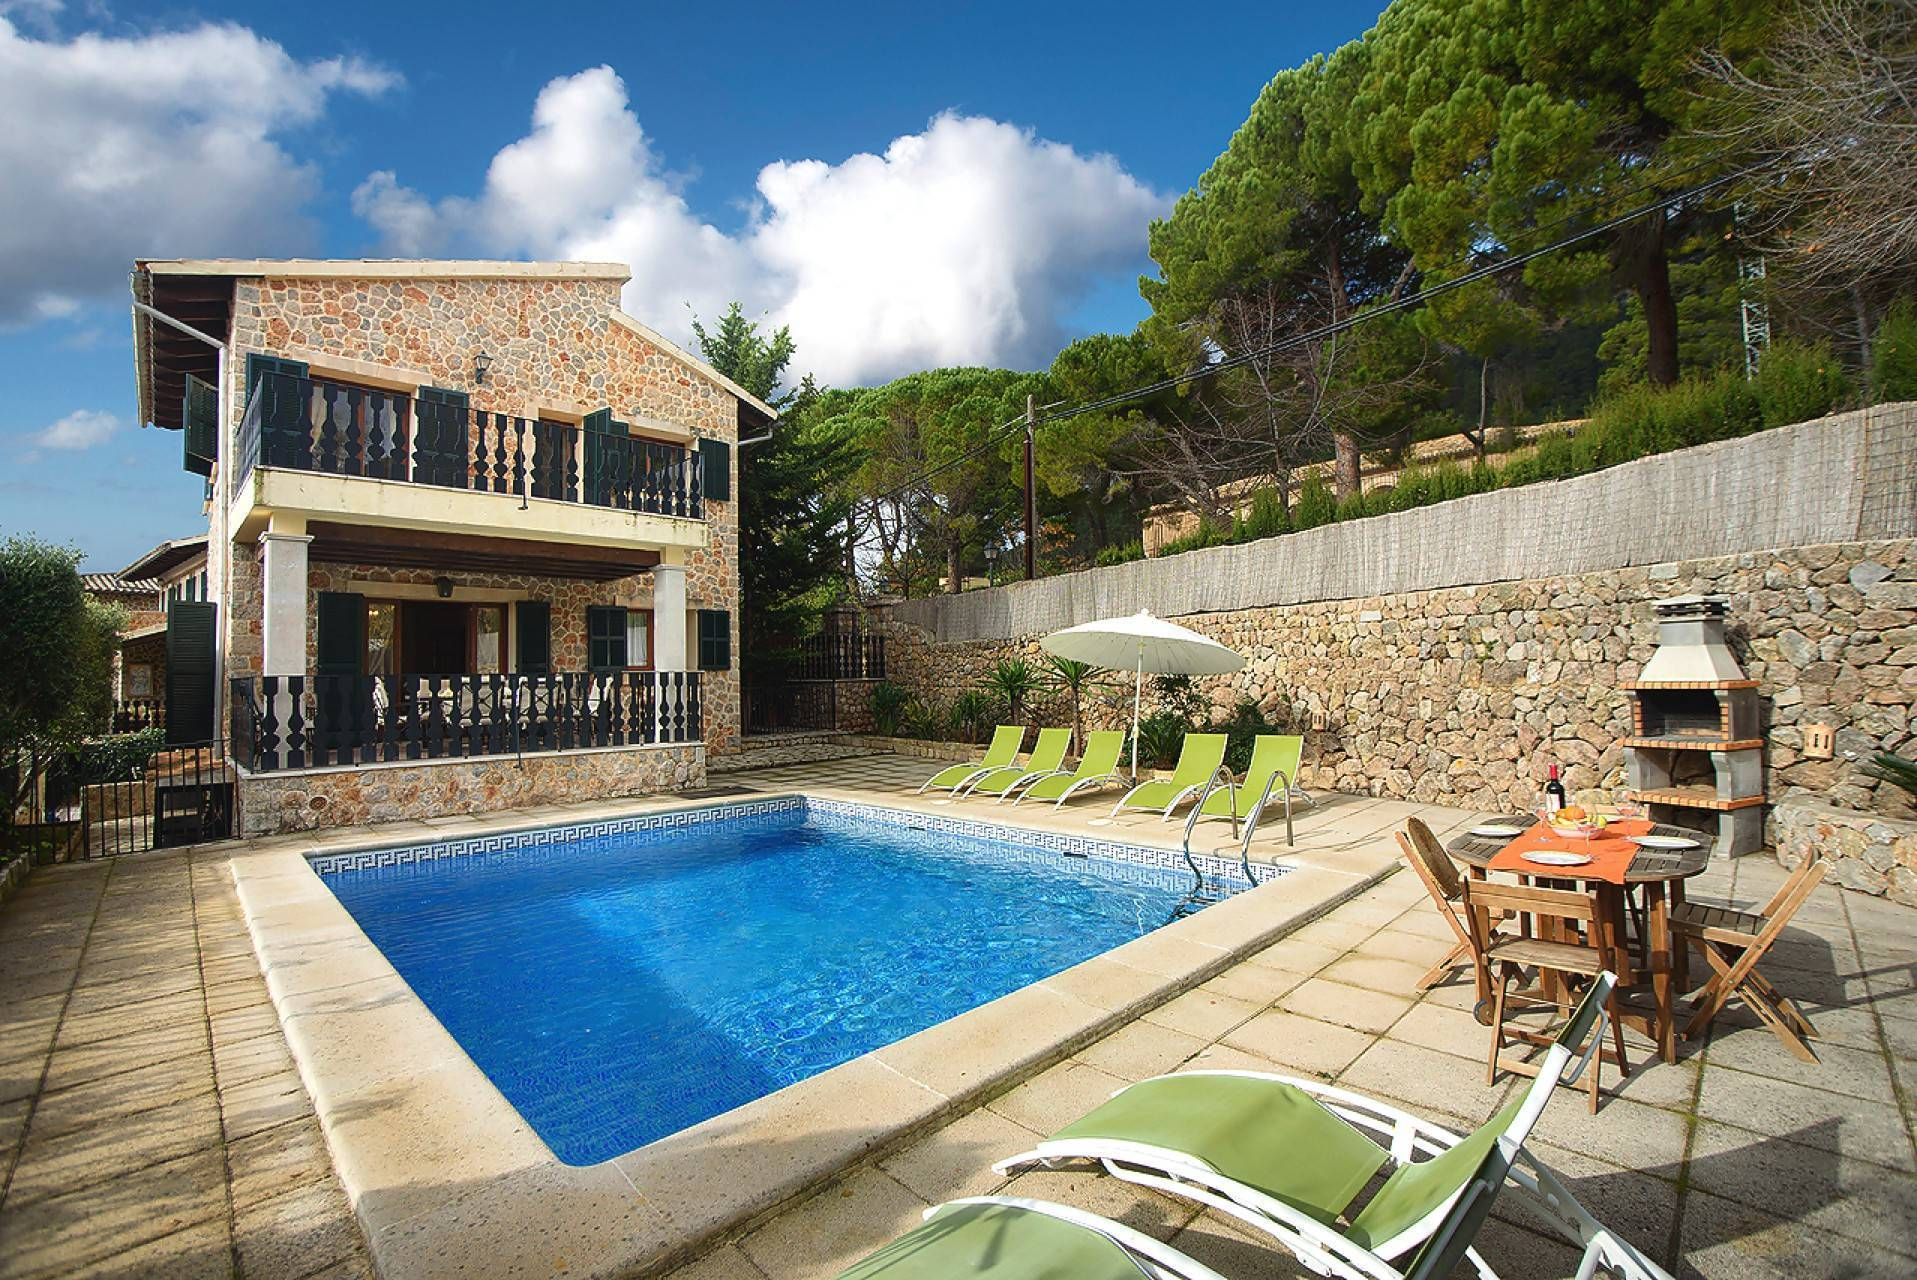 01-134 Cozy holiday home Mallorca west Bild 1